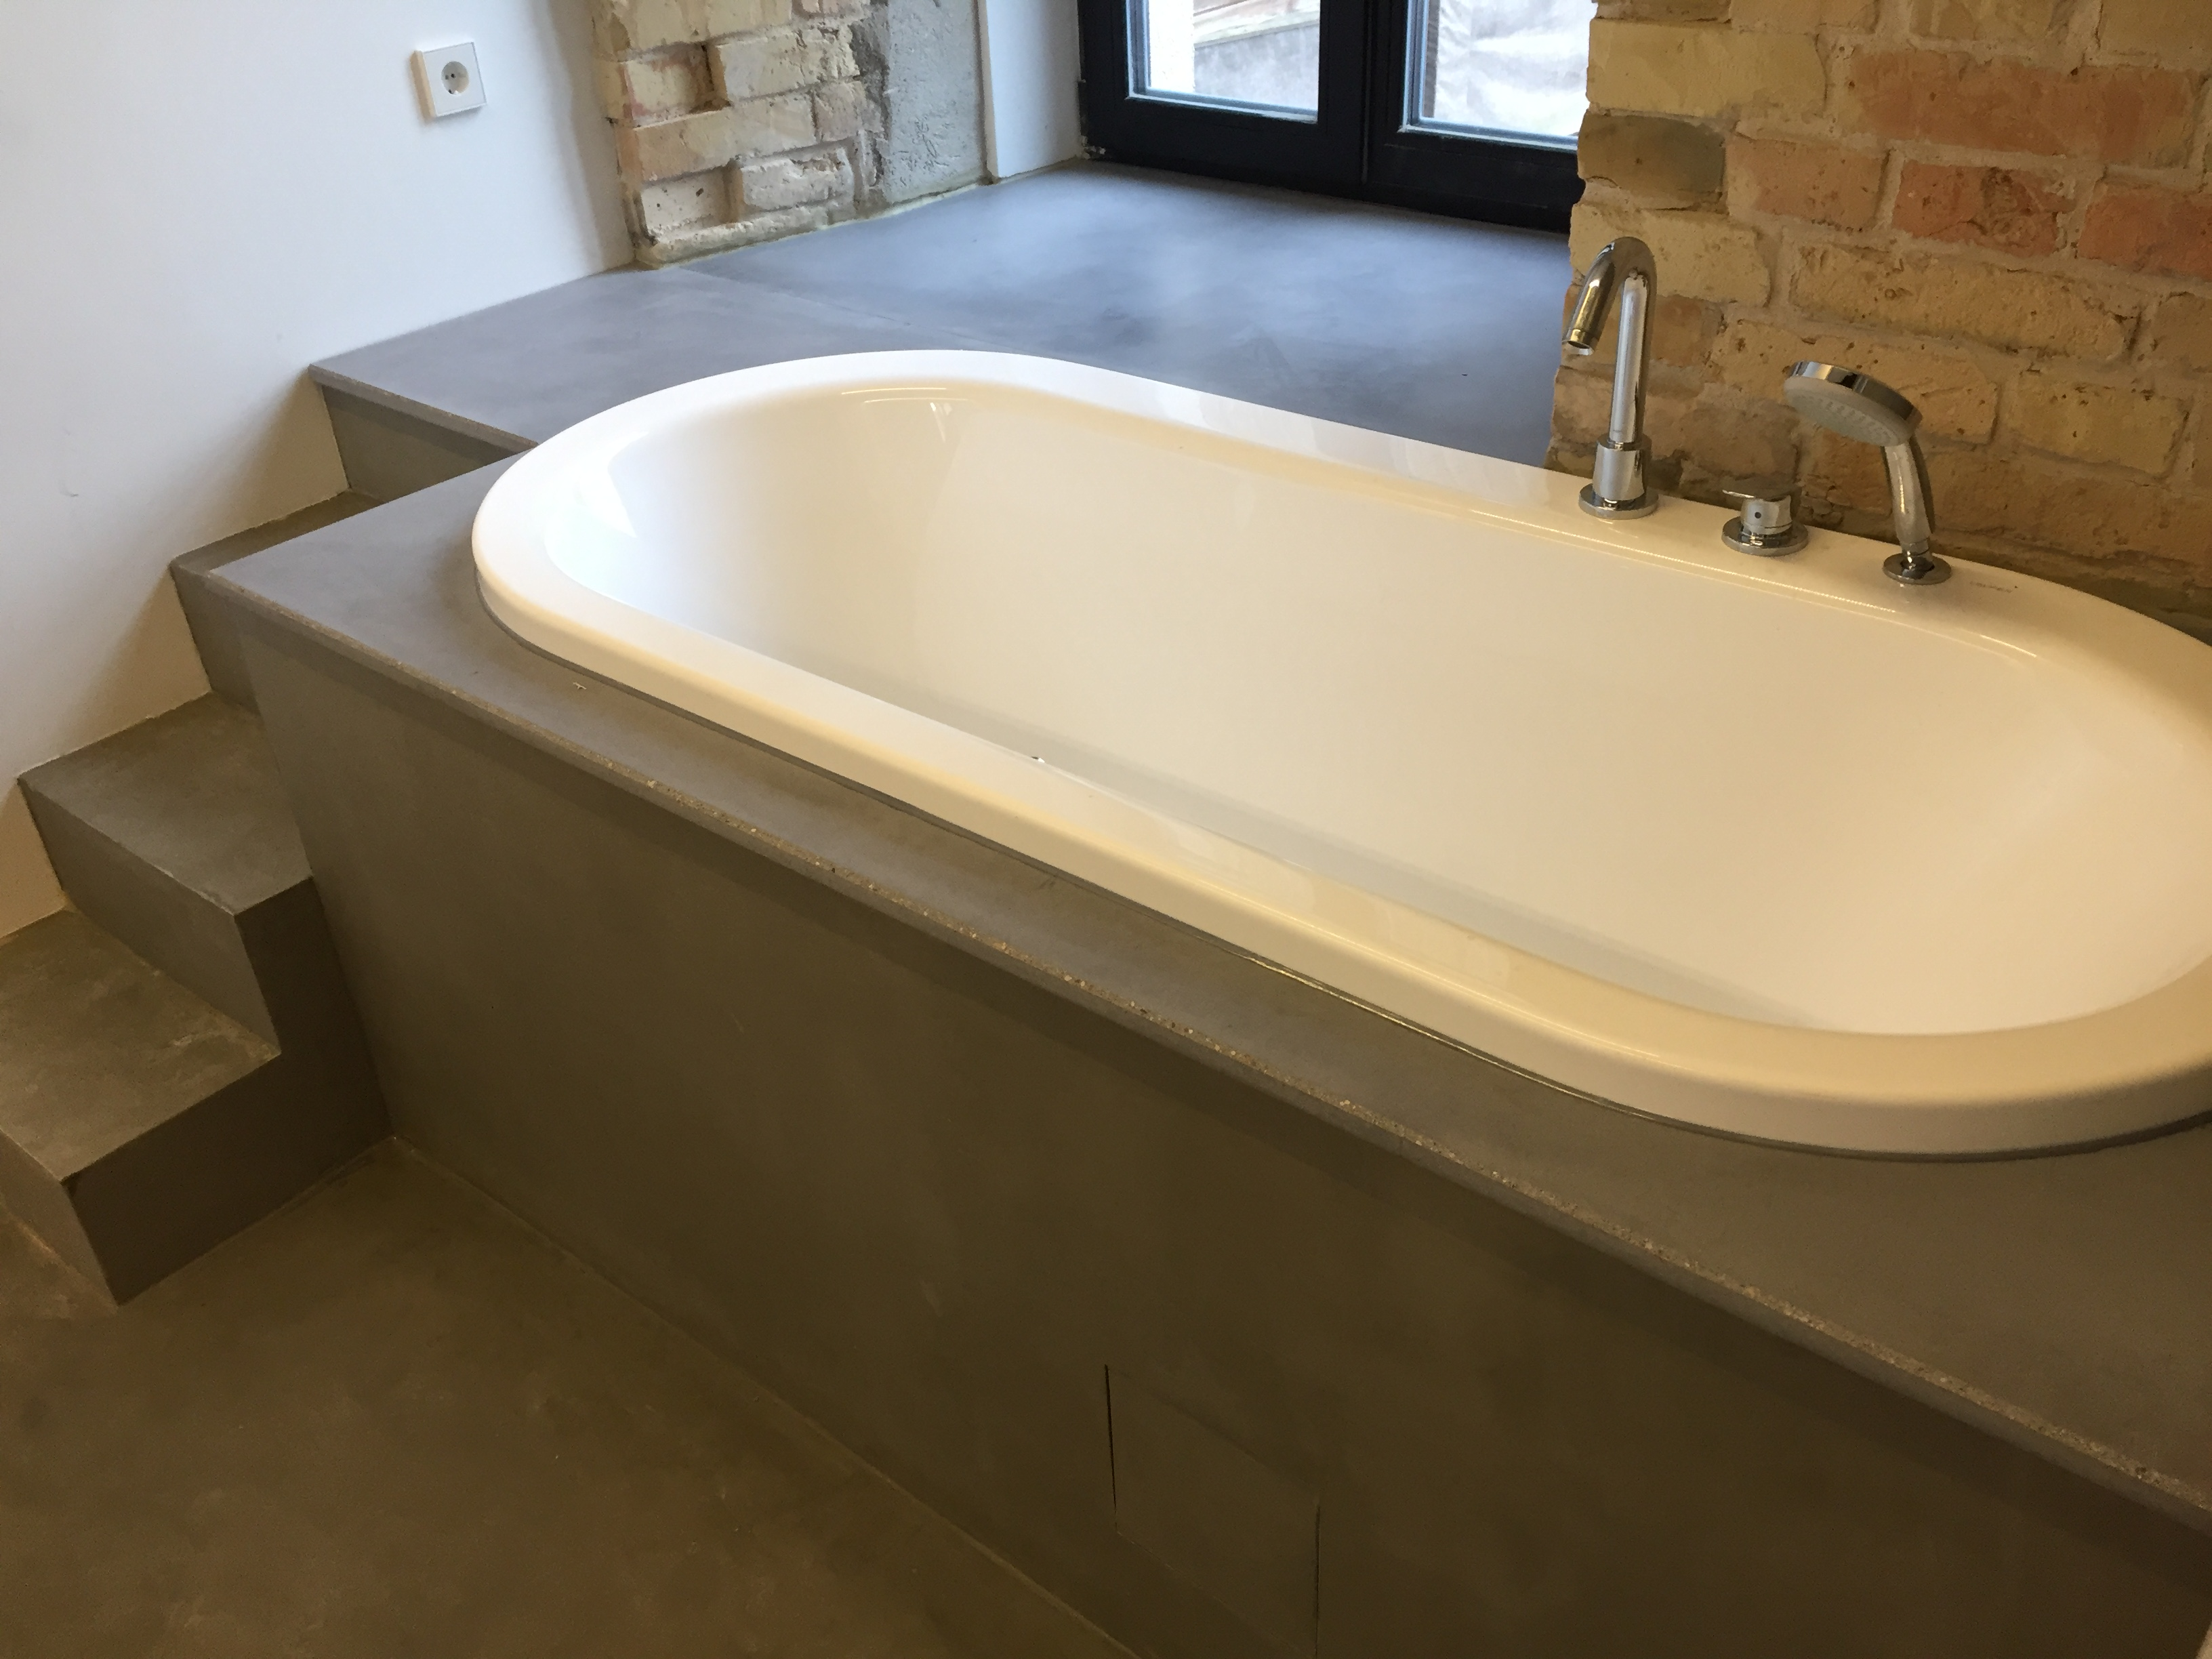 Concrete bath panels Thickness - 20mm Surface - natural, sealed